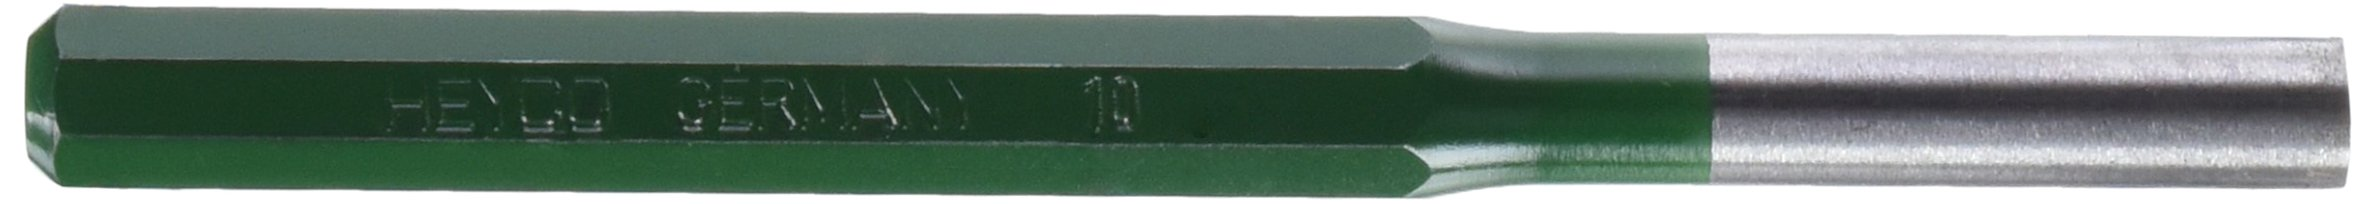 Heyco 1565001021 Parallel pin punch''1565'' 10mm